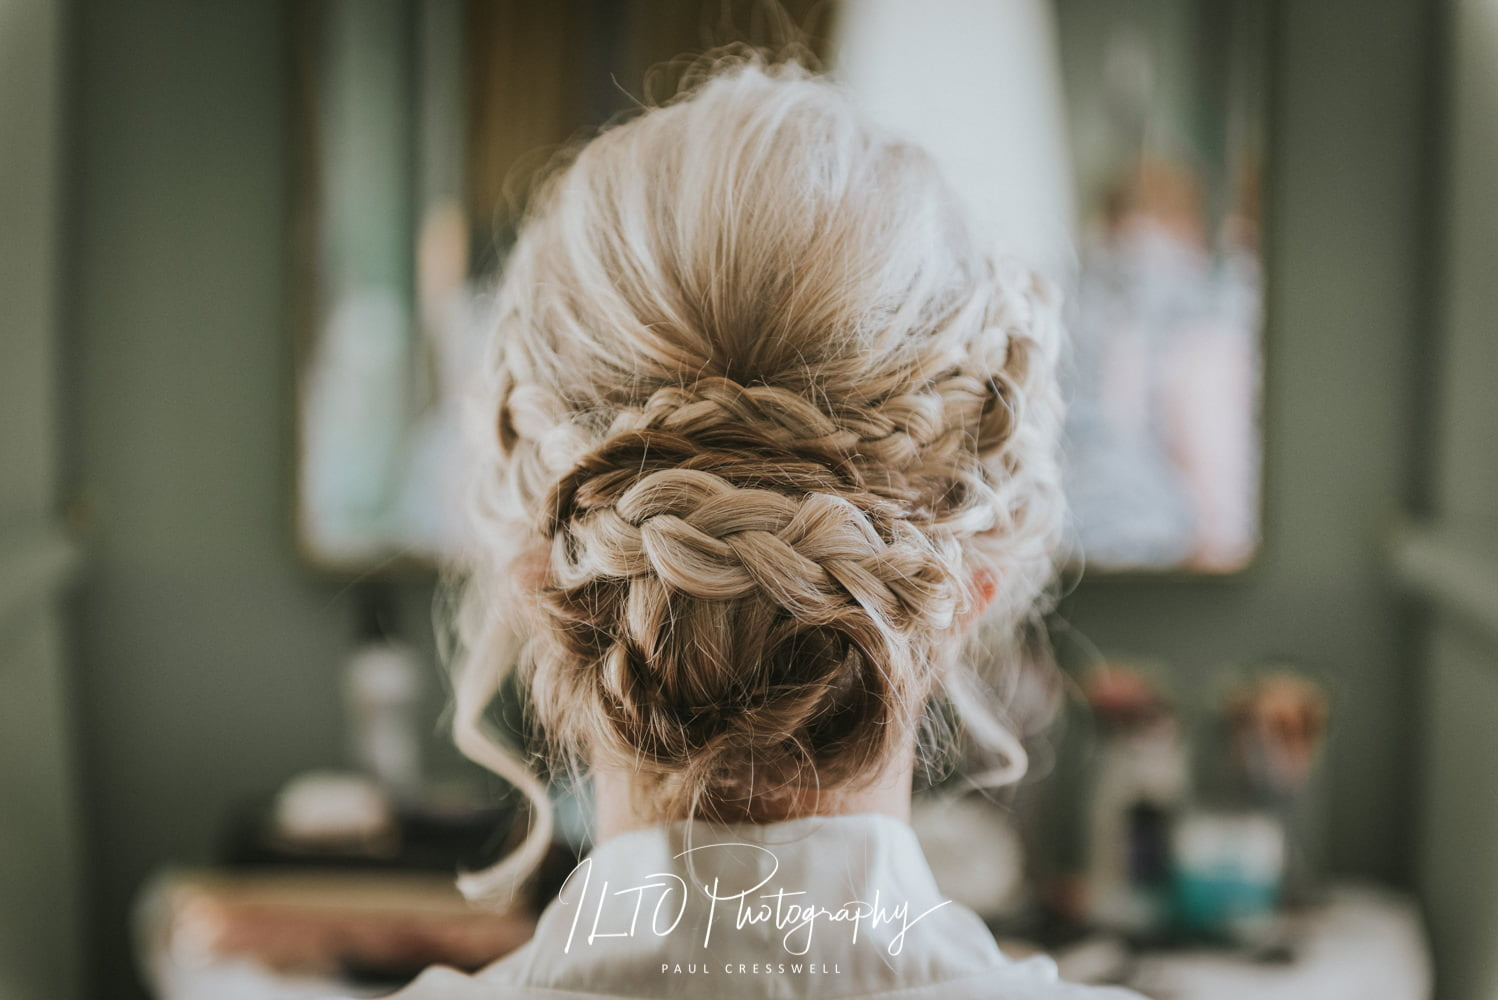 Bride hair style ideas west yorkshire wedding photographer affordable